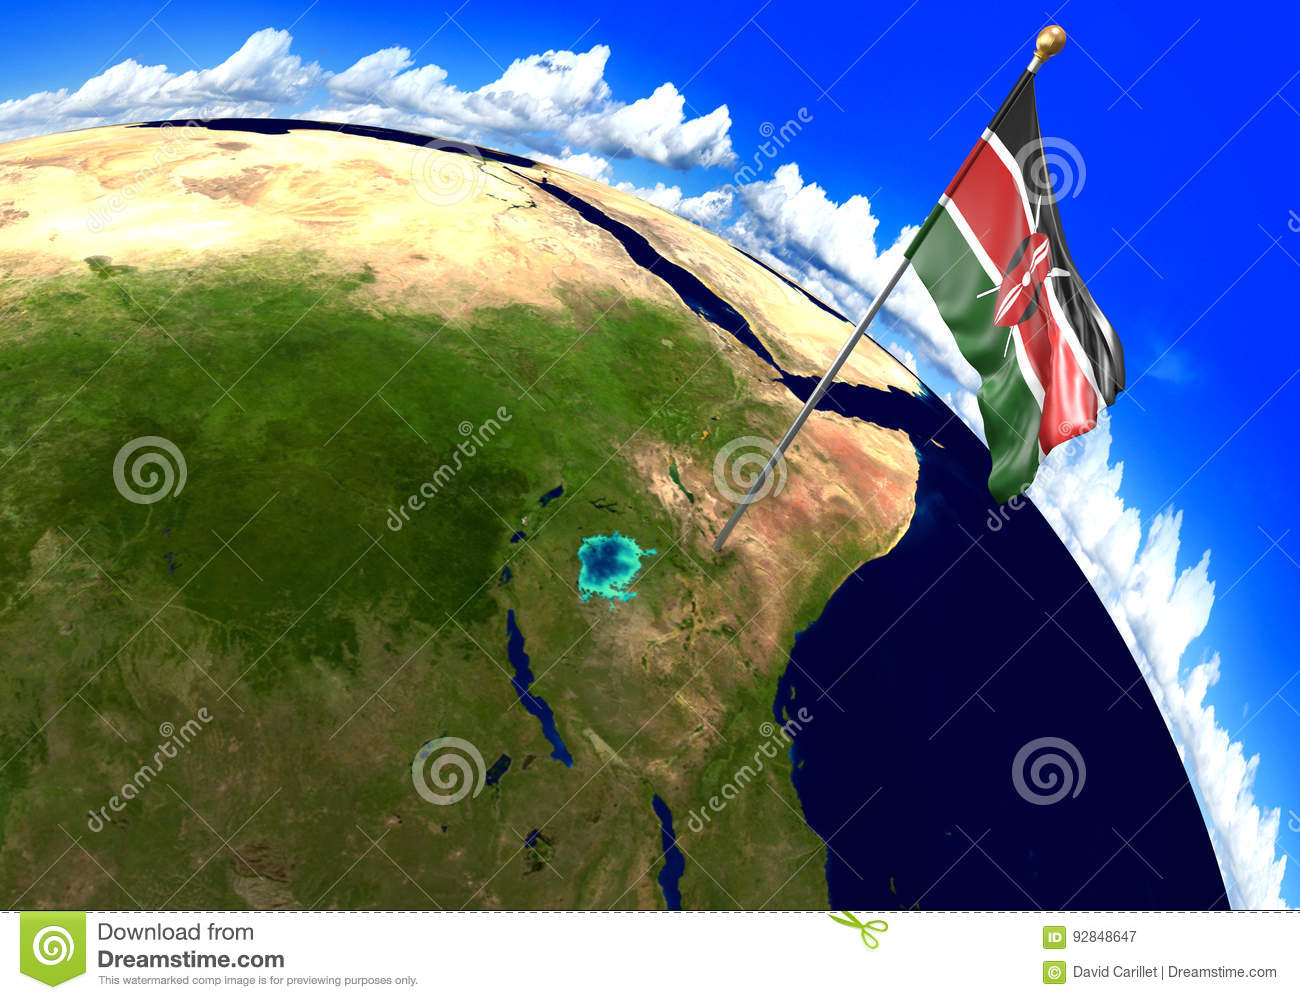 Kenya Location On World Map.Kenya National Flag Marking The Country Location On World Map 3d